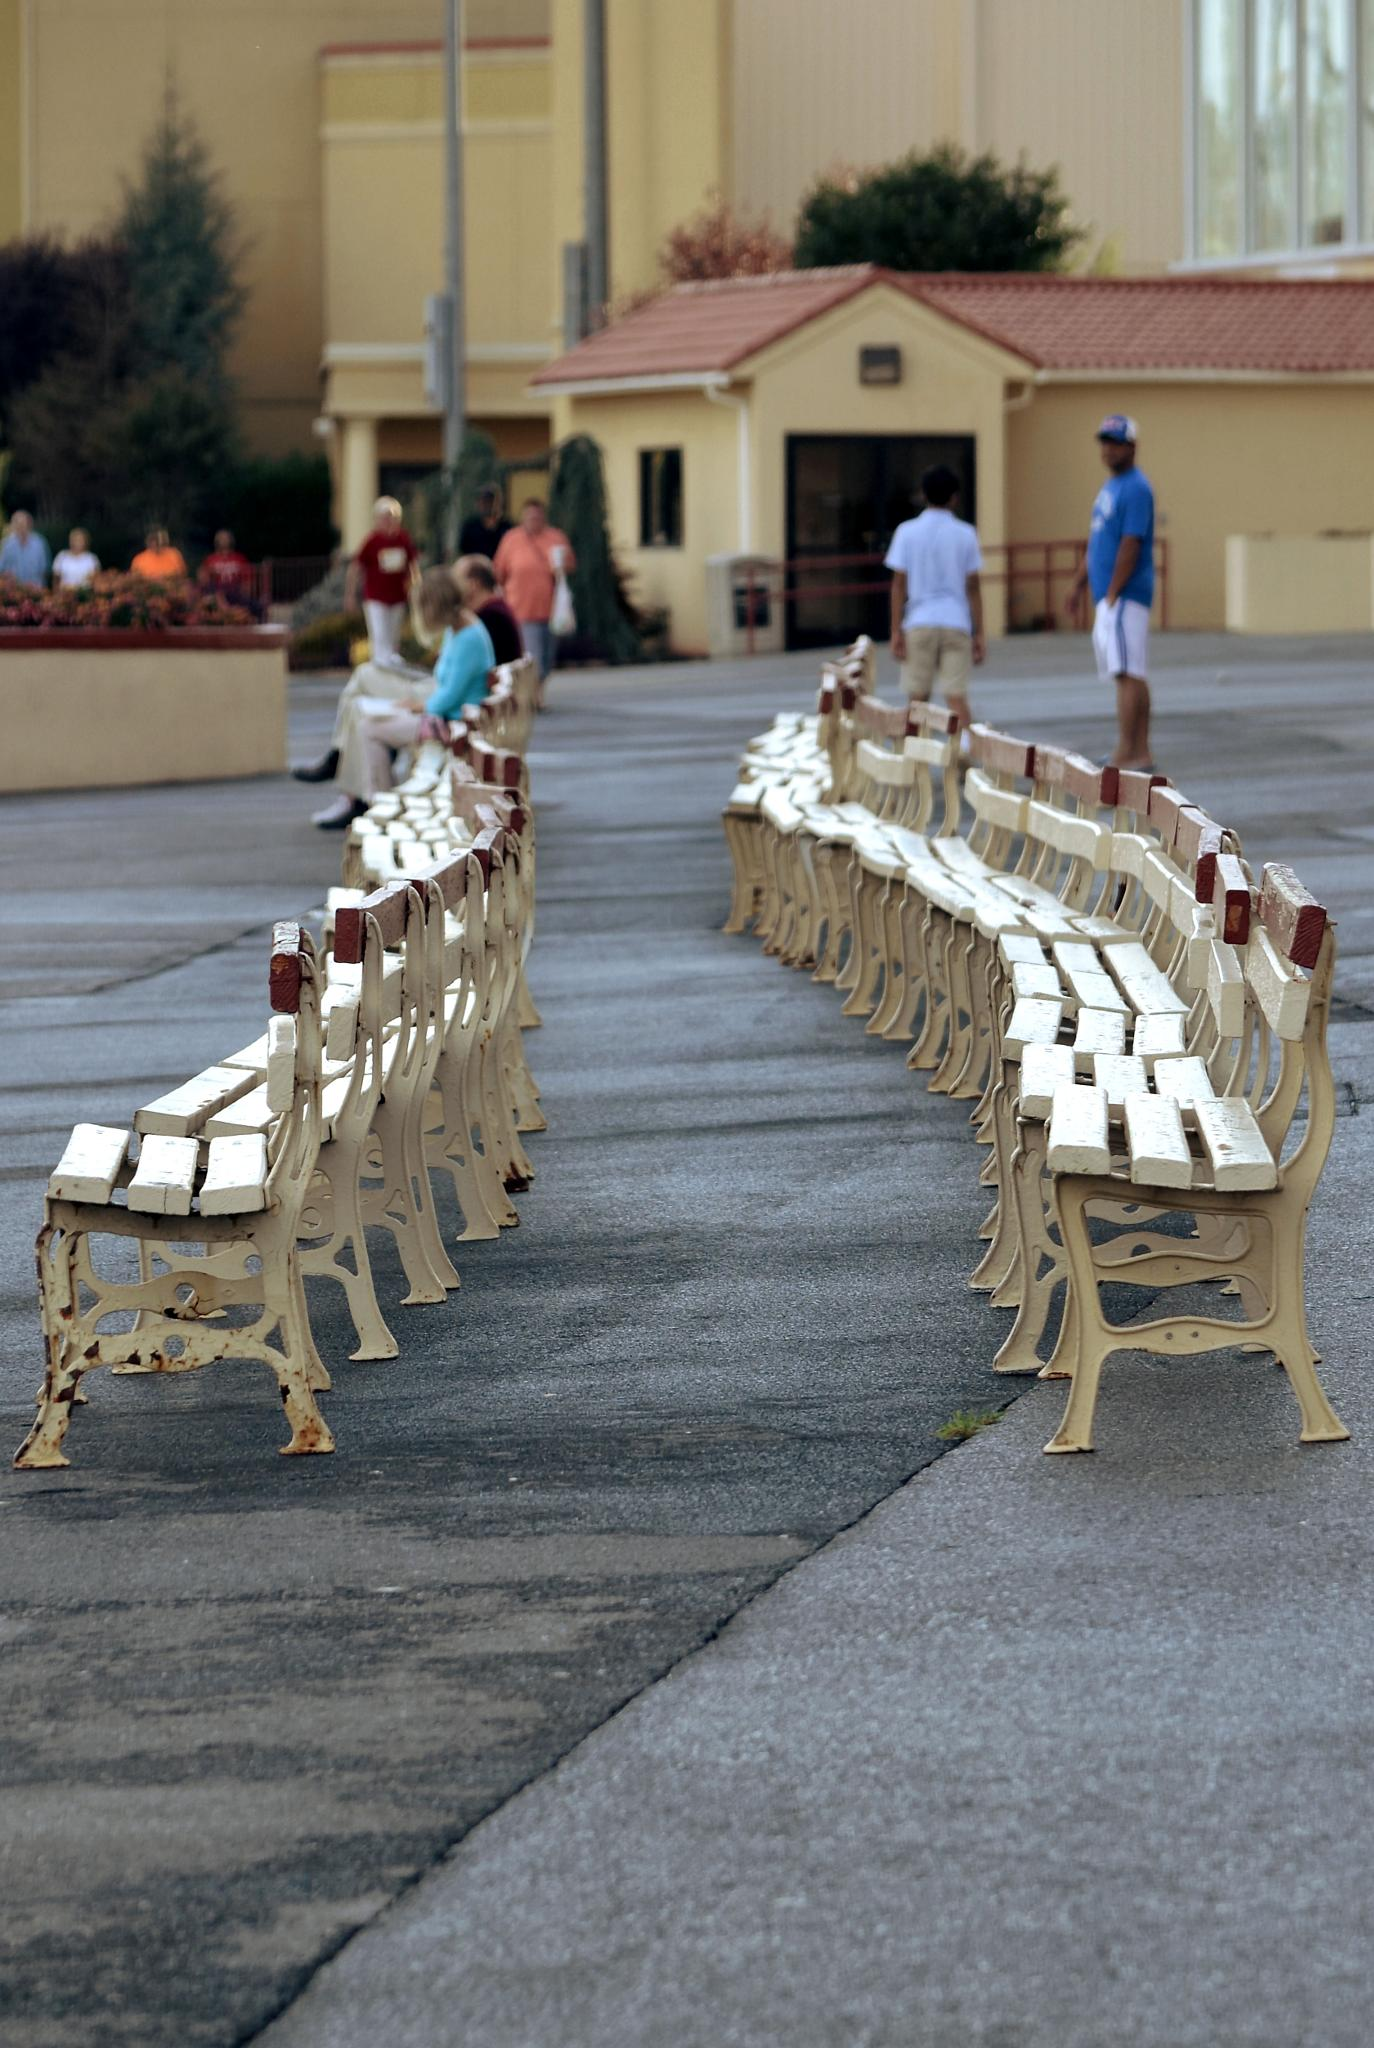 Benches at Charles Town Races by JimFleenor